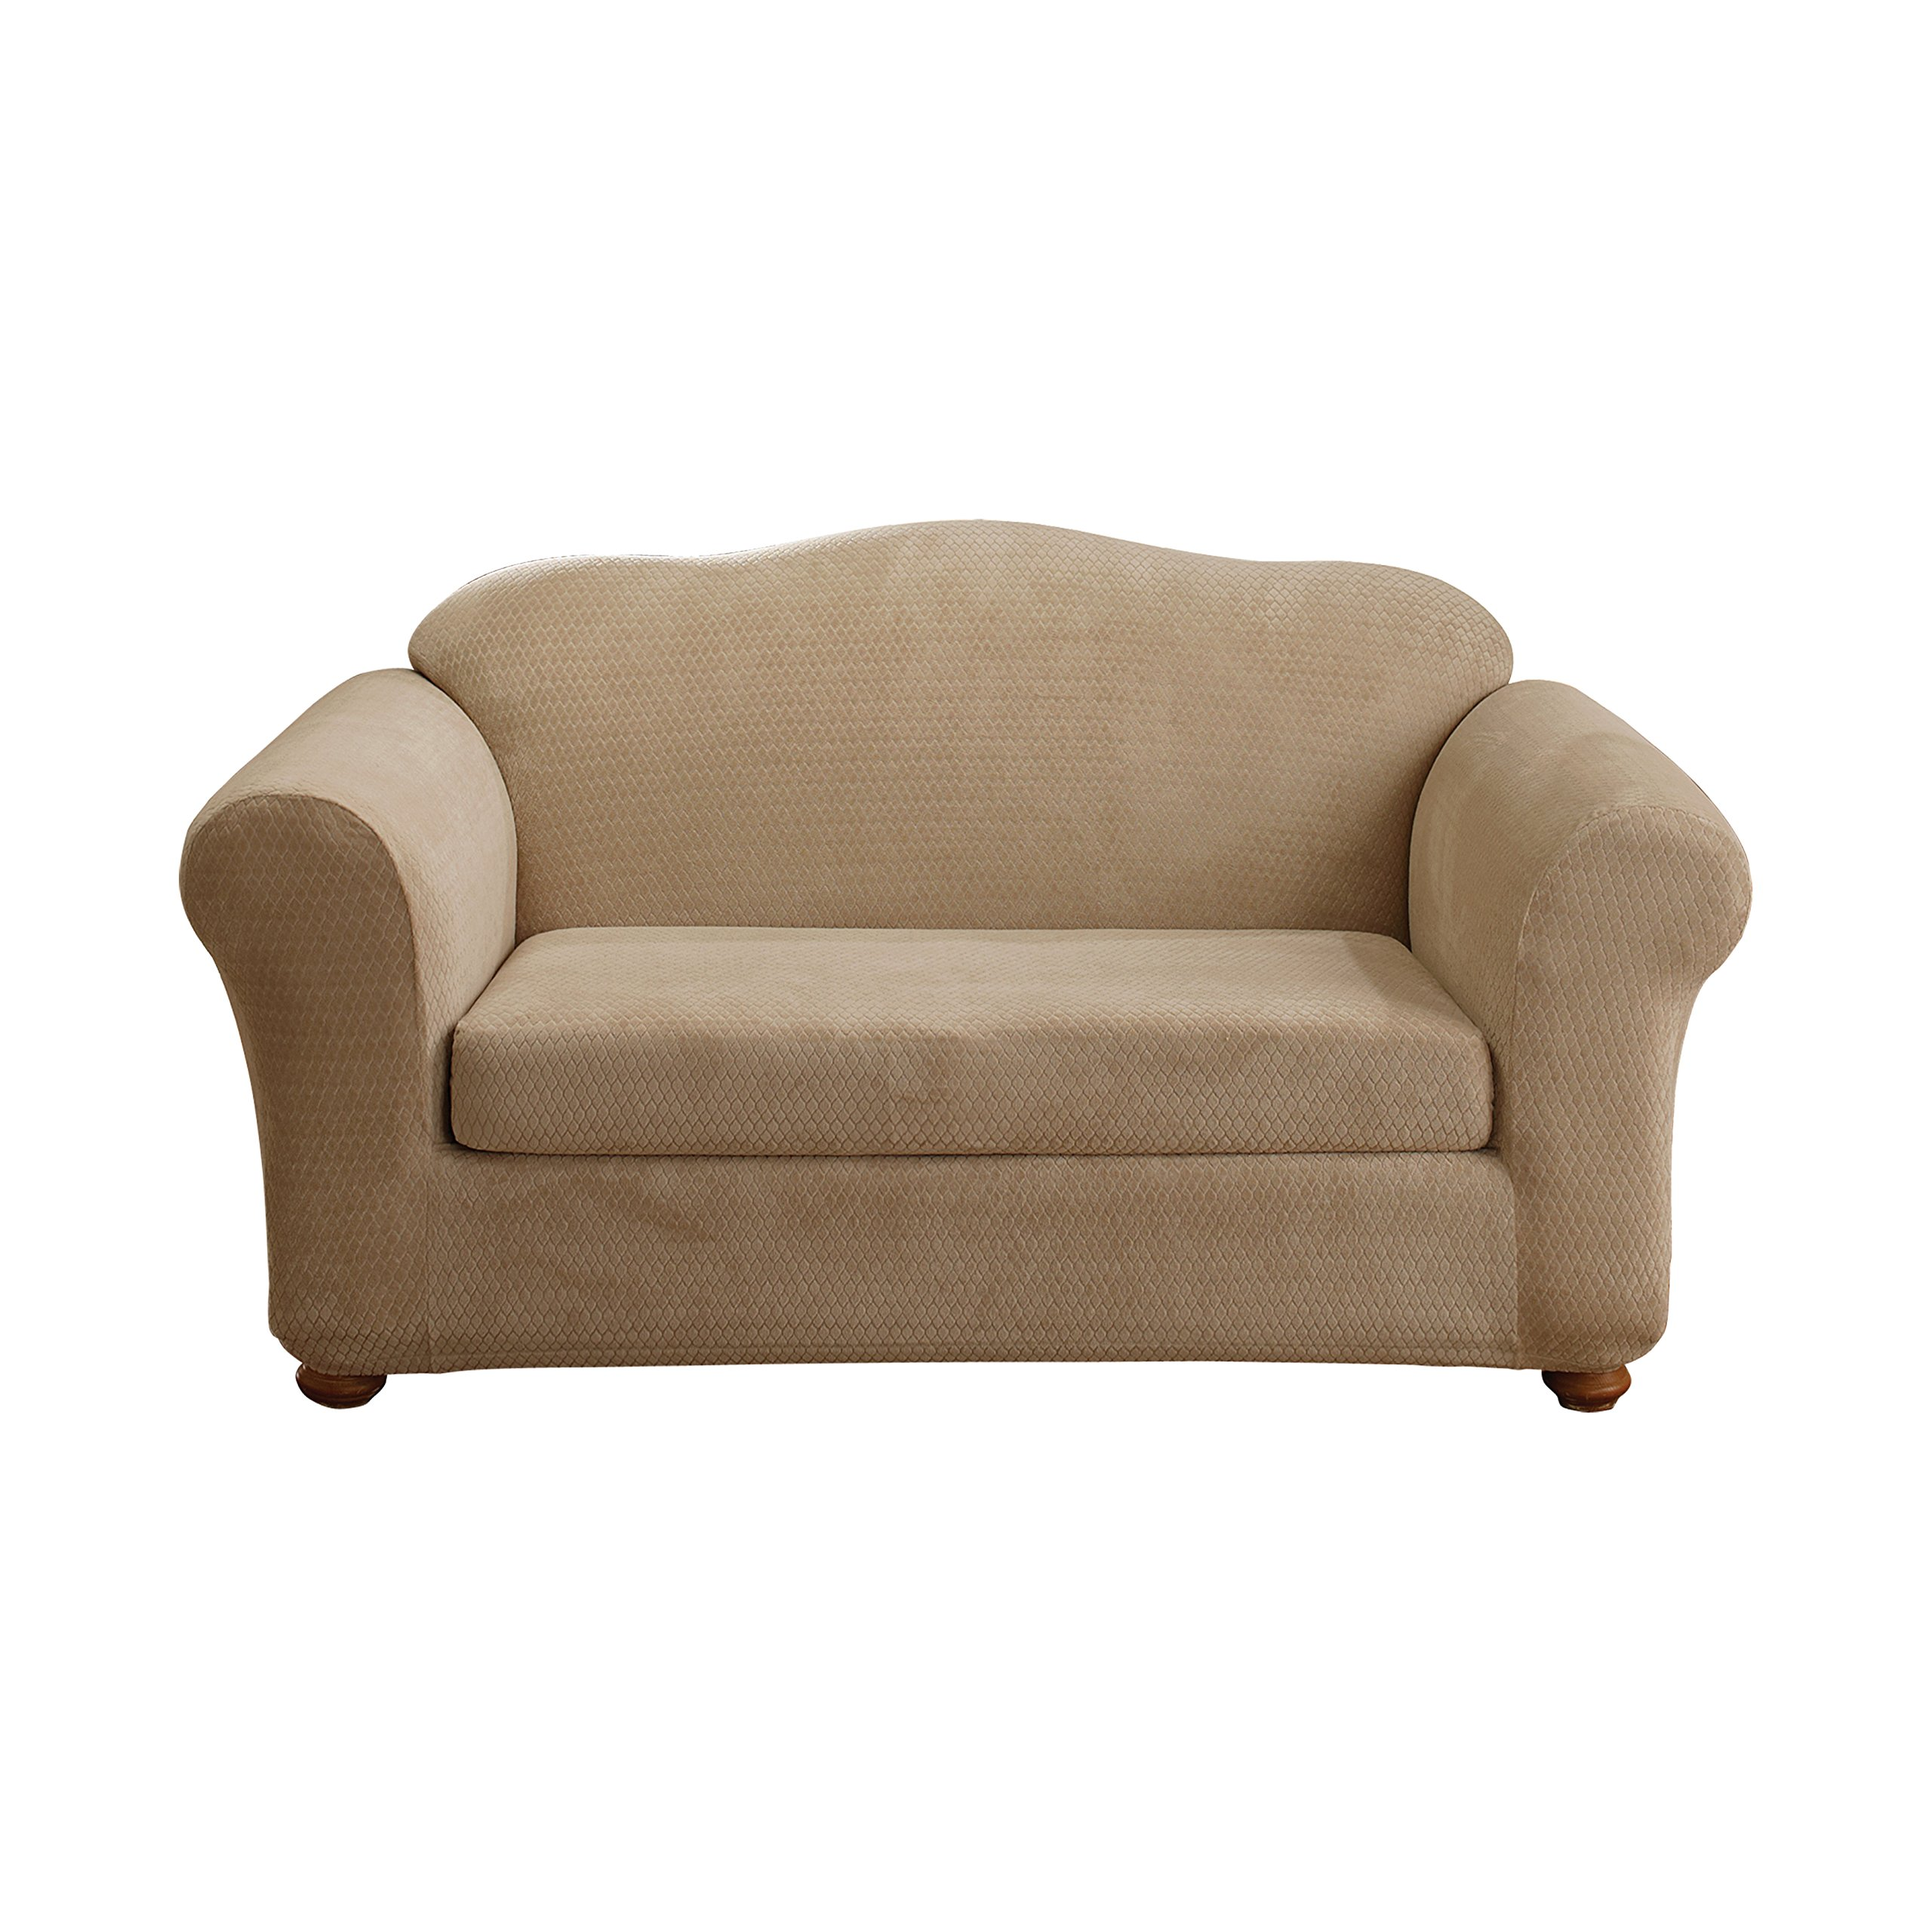 Sure Fit Stretch Royal Diamond 2-Piece - Sofa Slipcover  - Cream (SF36767) by Surefit